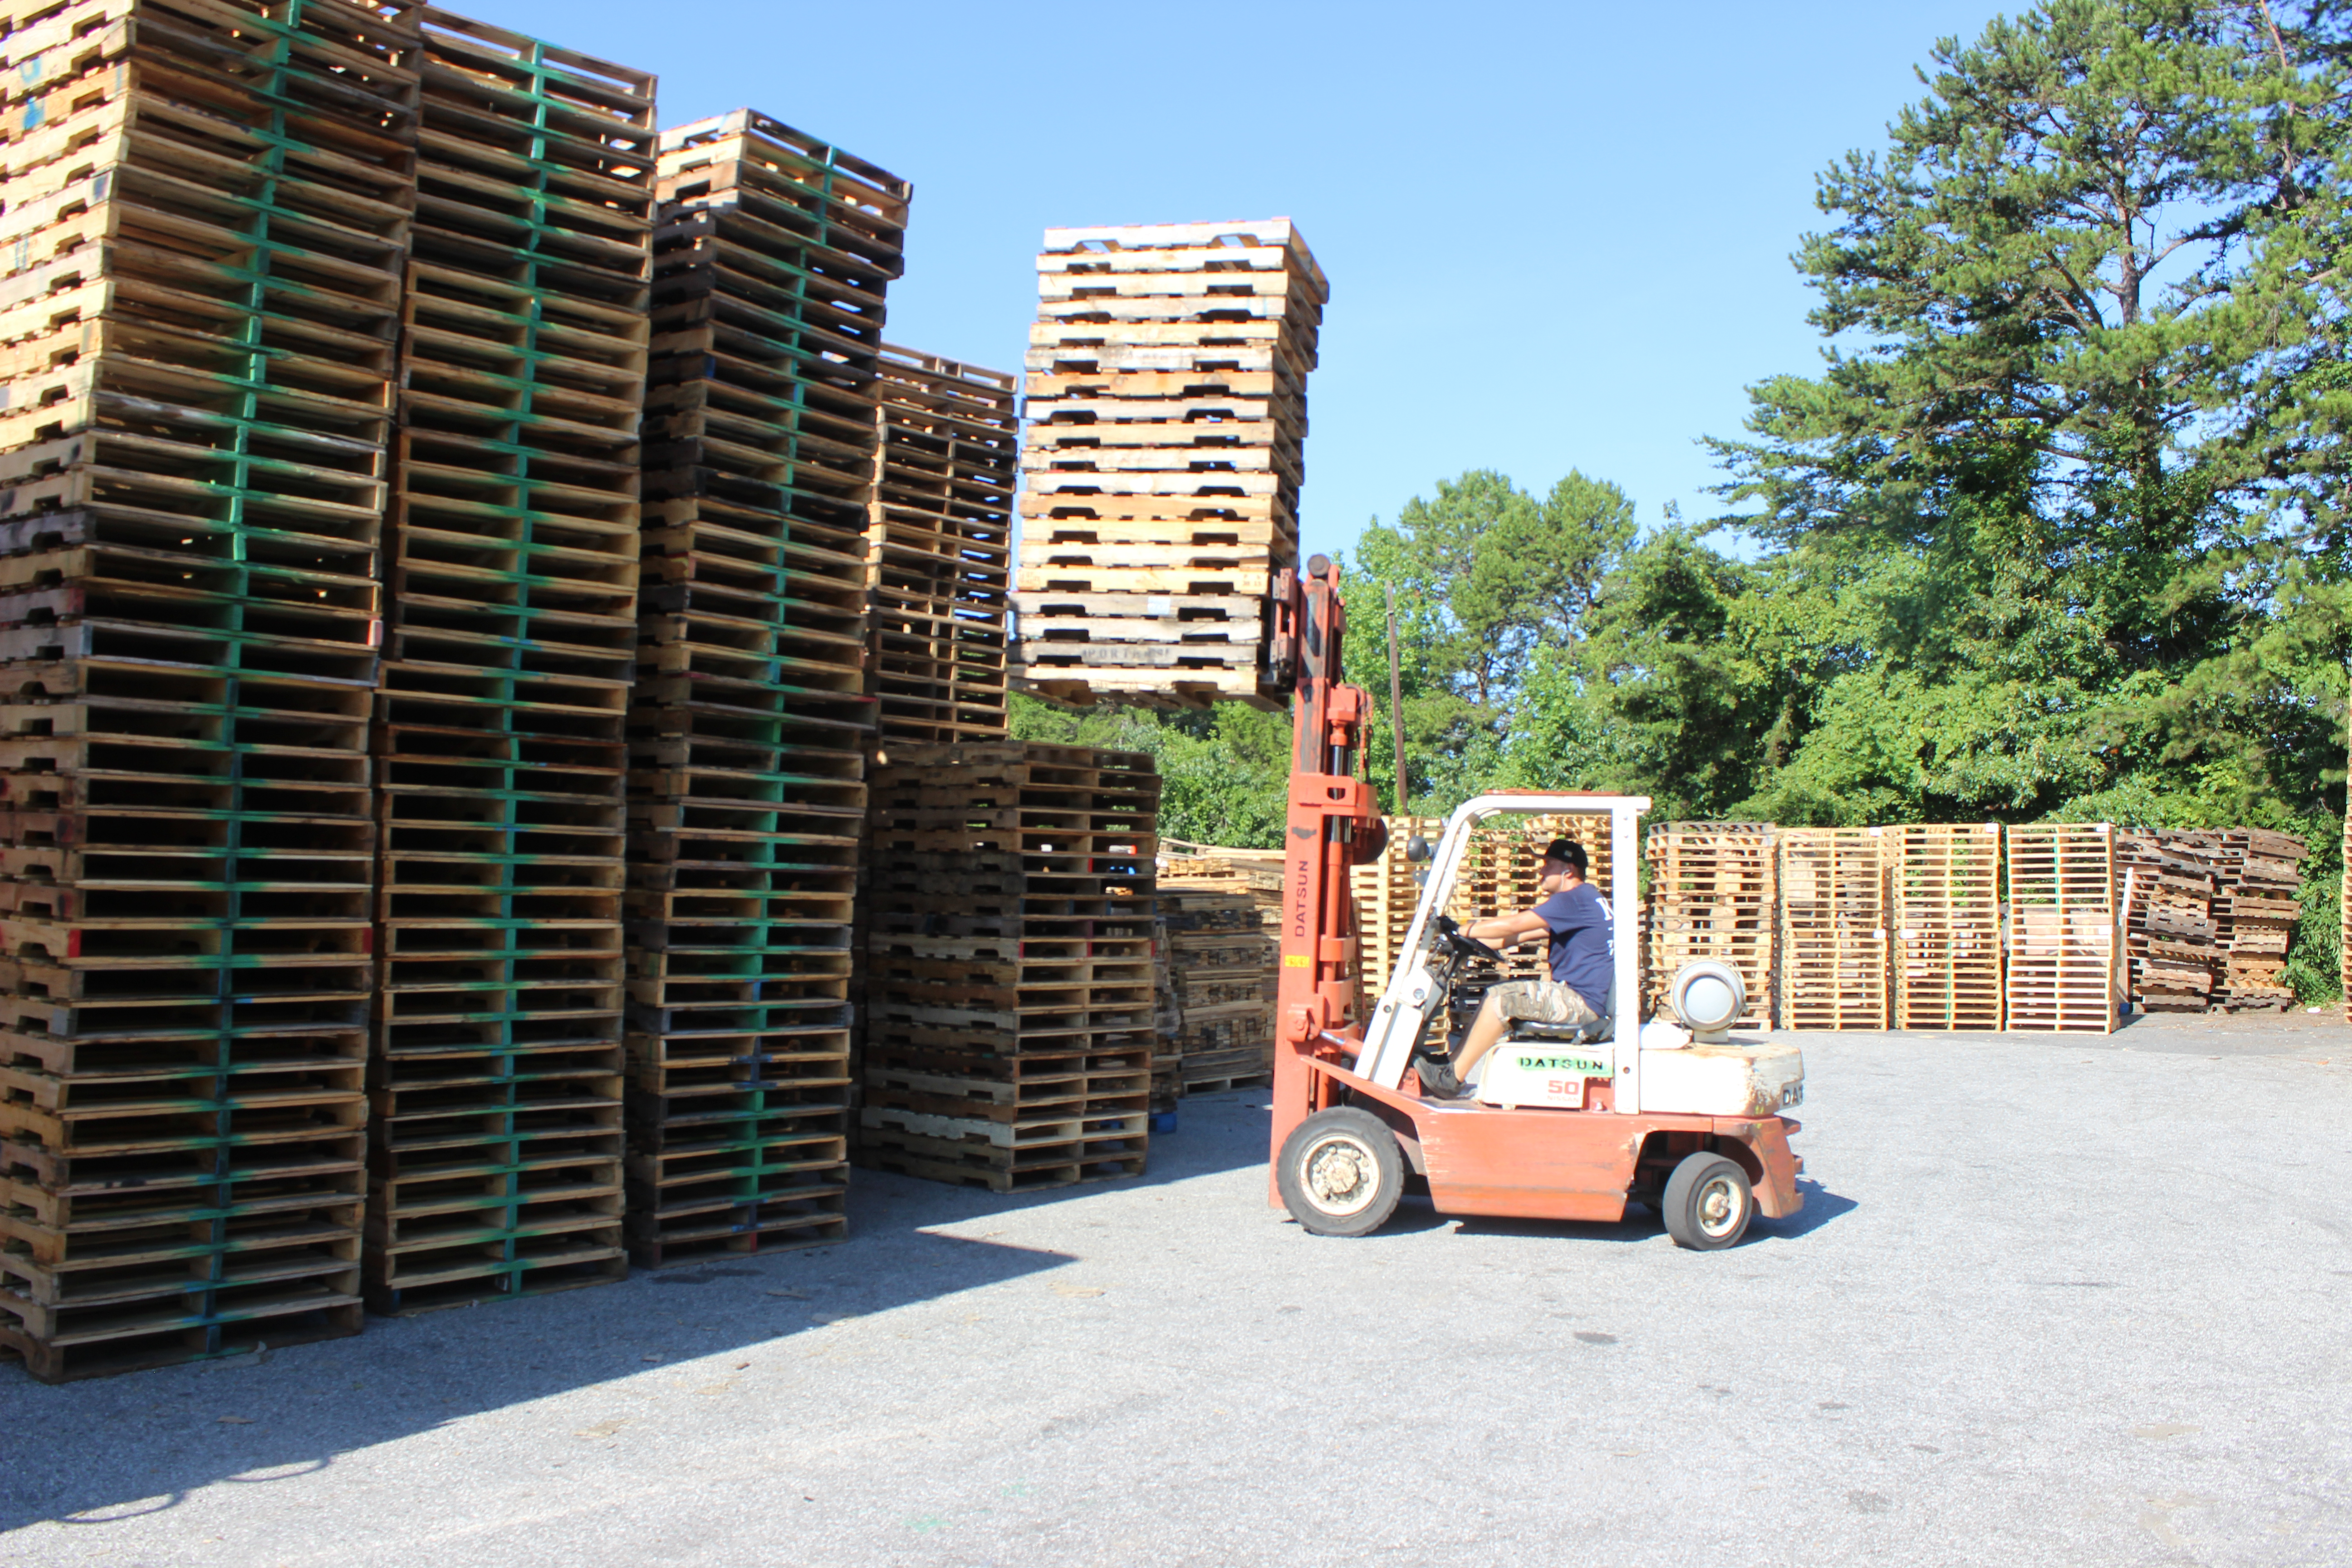 Stacking pallets